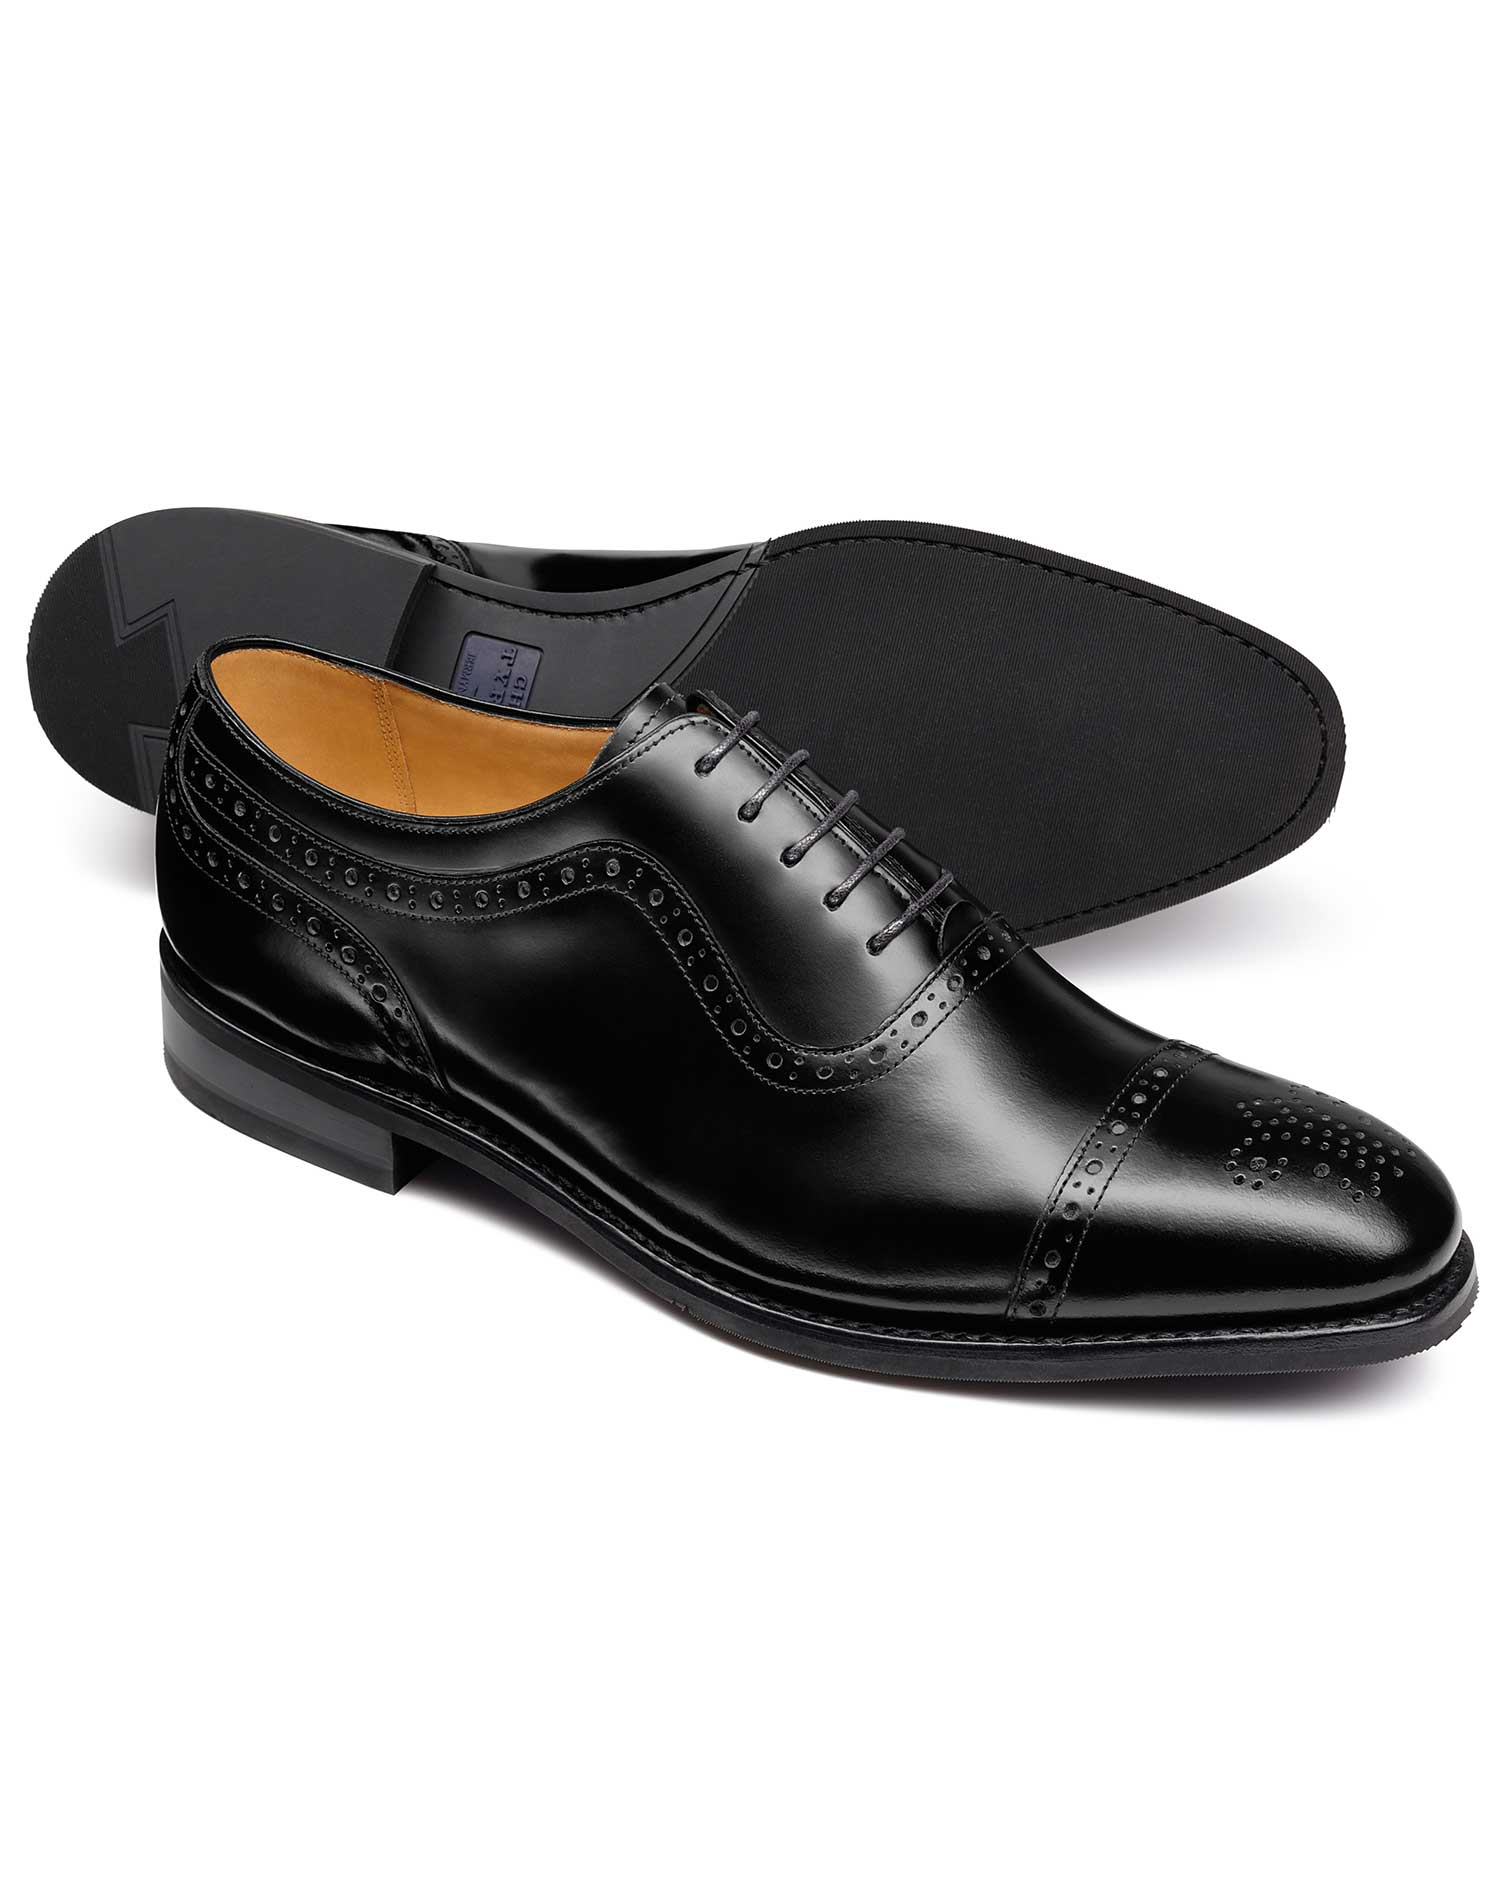 Black Goodyear Welted Oxford Brogue Rubber Sole Shoe Size 8.5 R by Charles Tyrwhitt